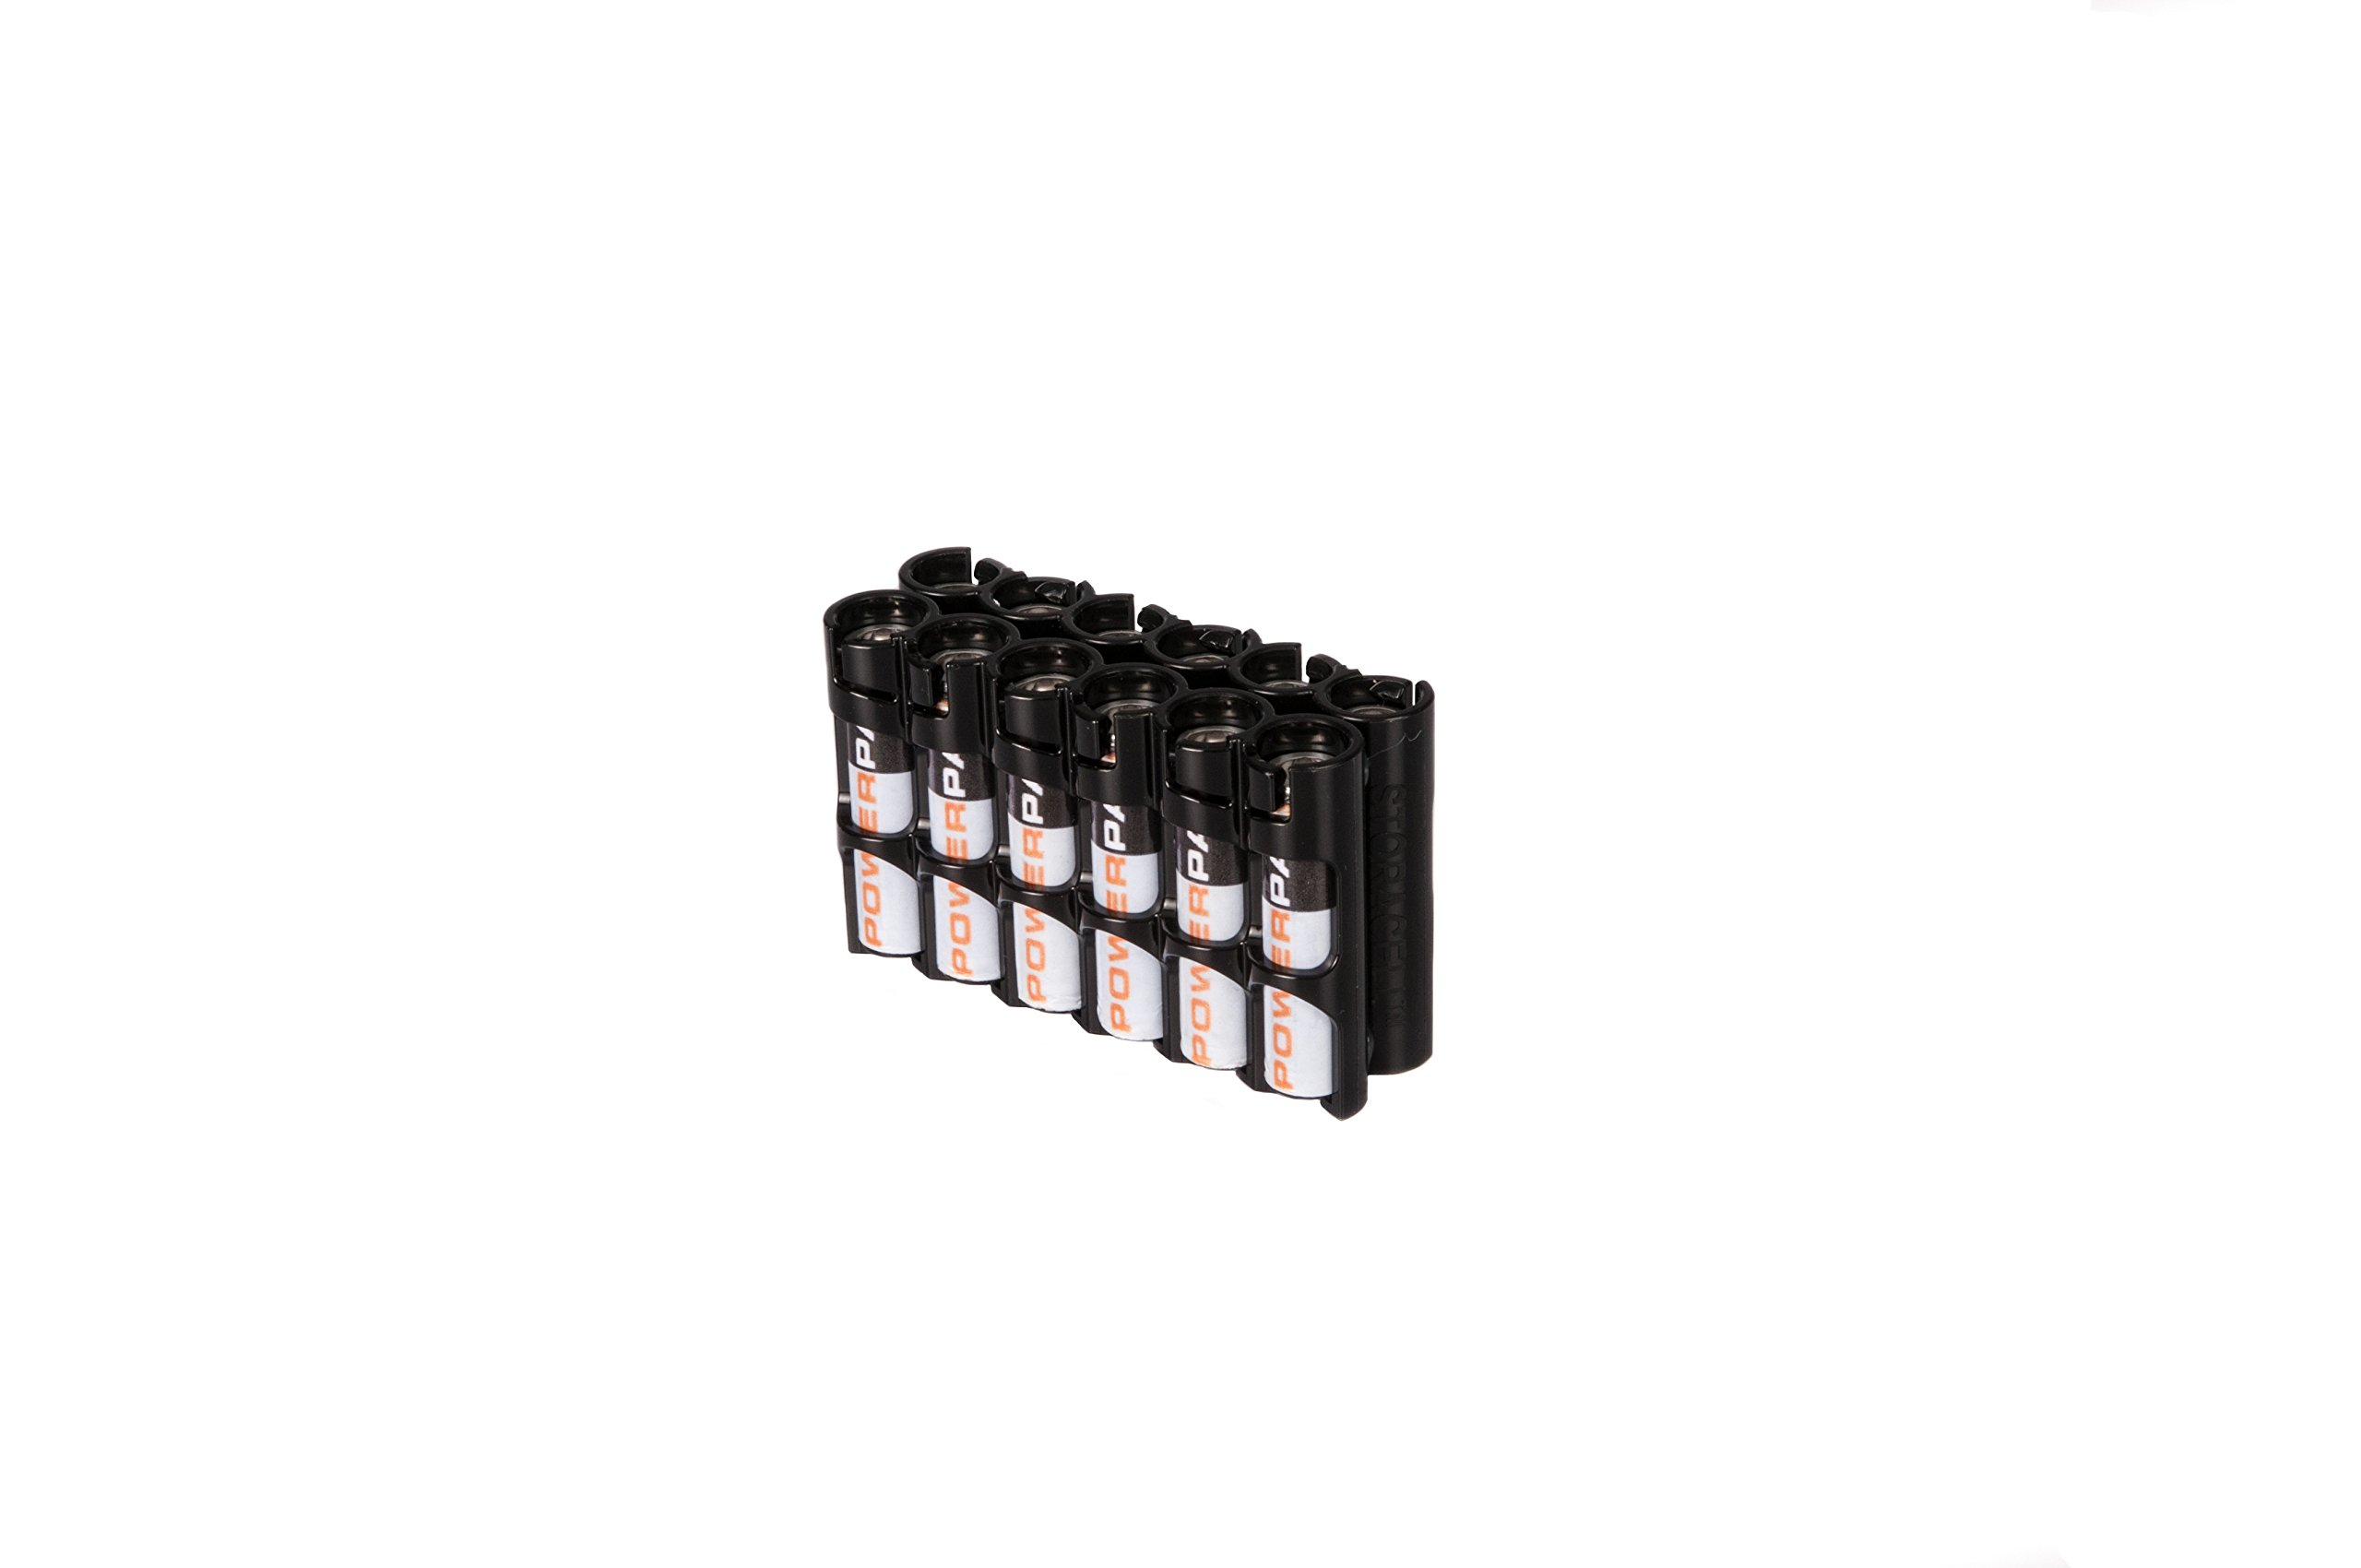 Storacell by Powerpax AAA Battery Caddy, Black, Holds 12 Batteries